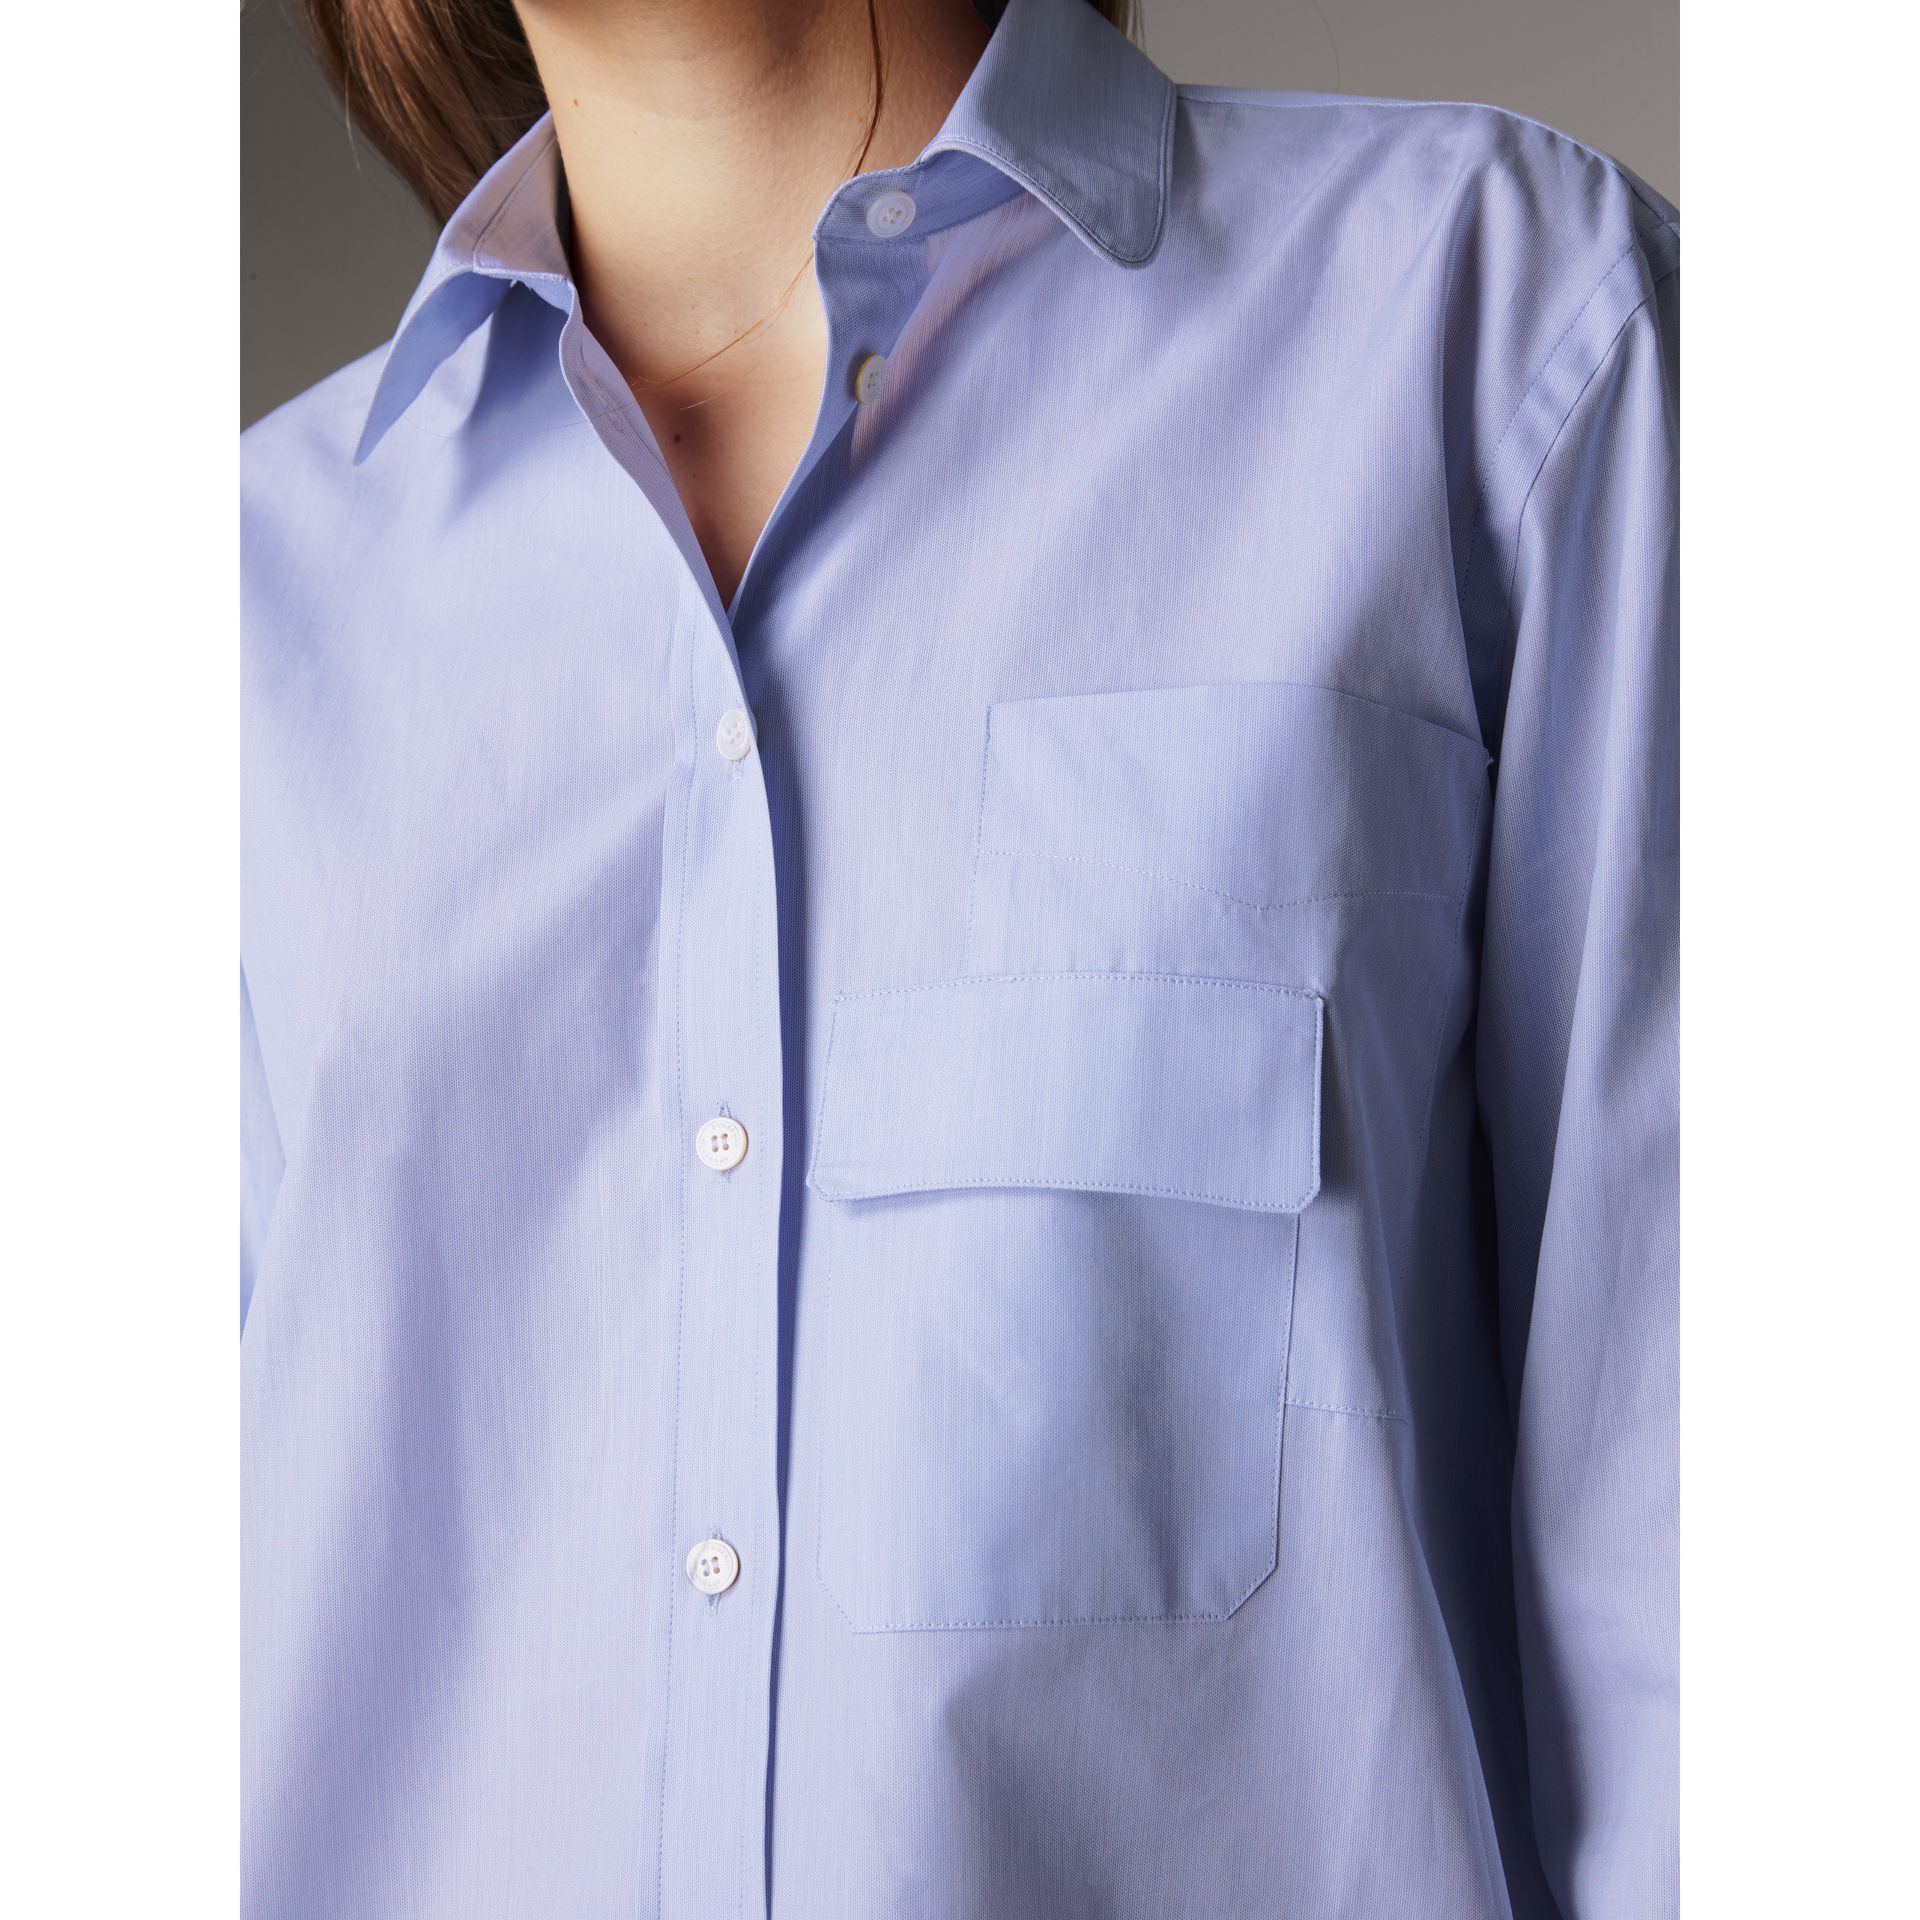 Double Pocket Cotton Oversize Shirt in Pale Blue - Women | Burberry United Kingdom - gallery image 2